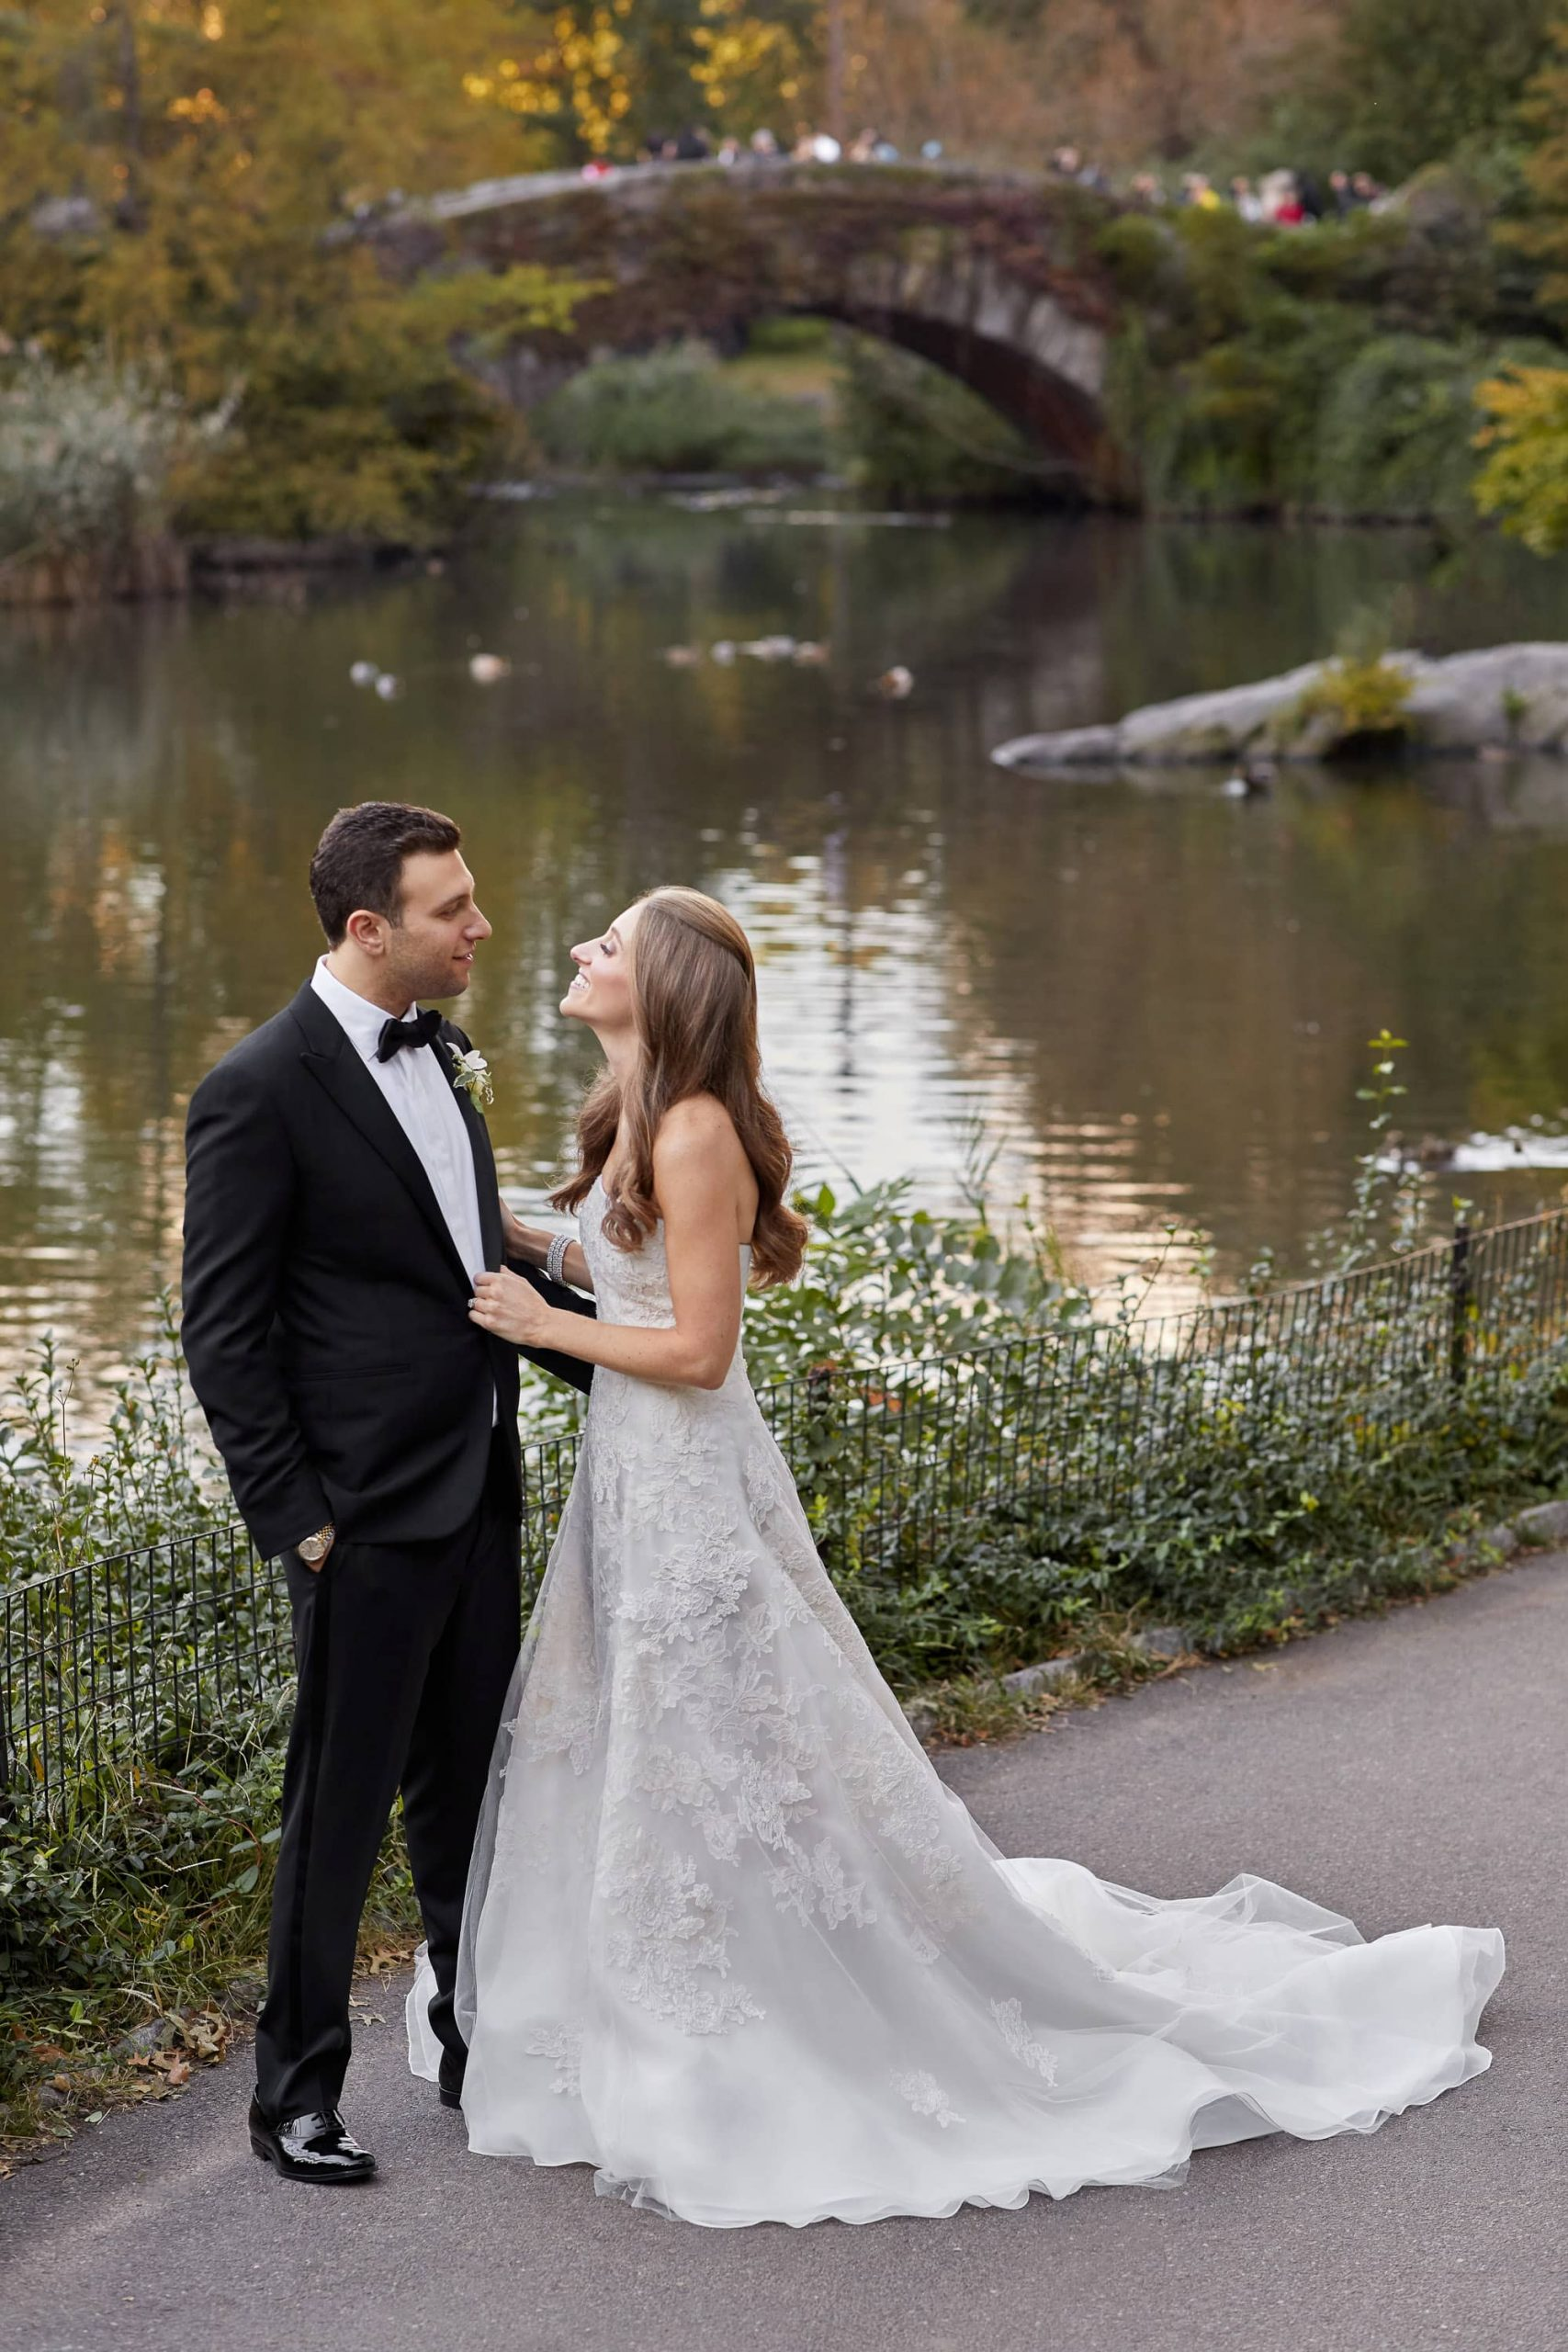 Bride and groom at central park at this classic autumn wedding at The Plaza in NYC | Photo by Christian Oth Studio